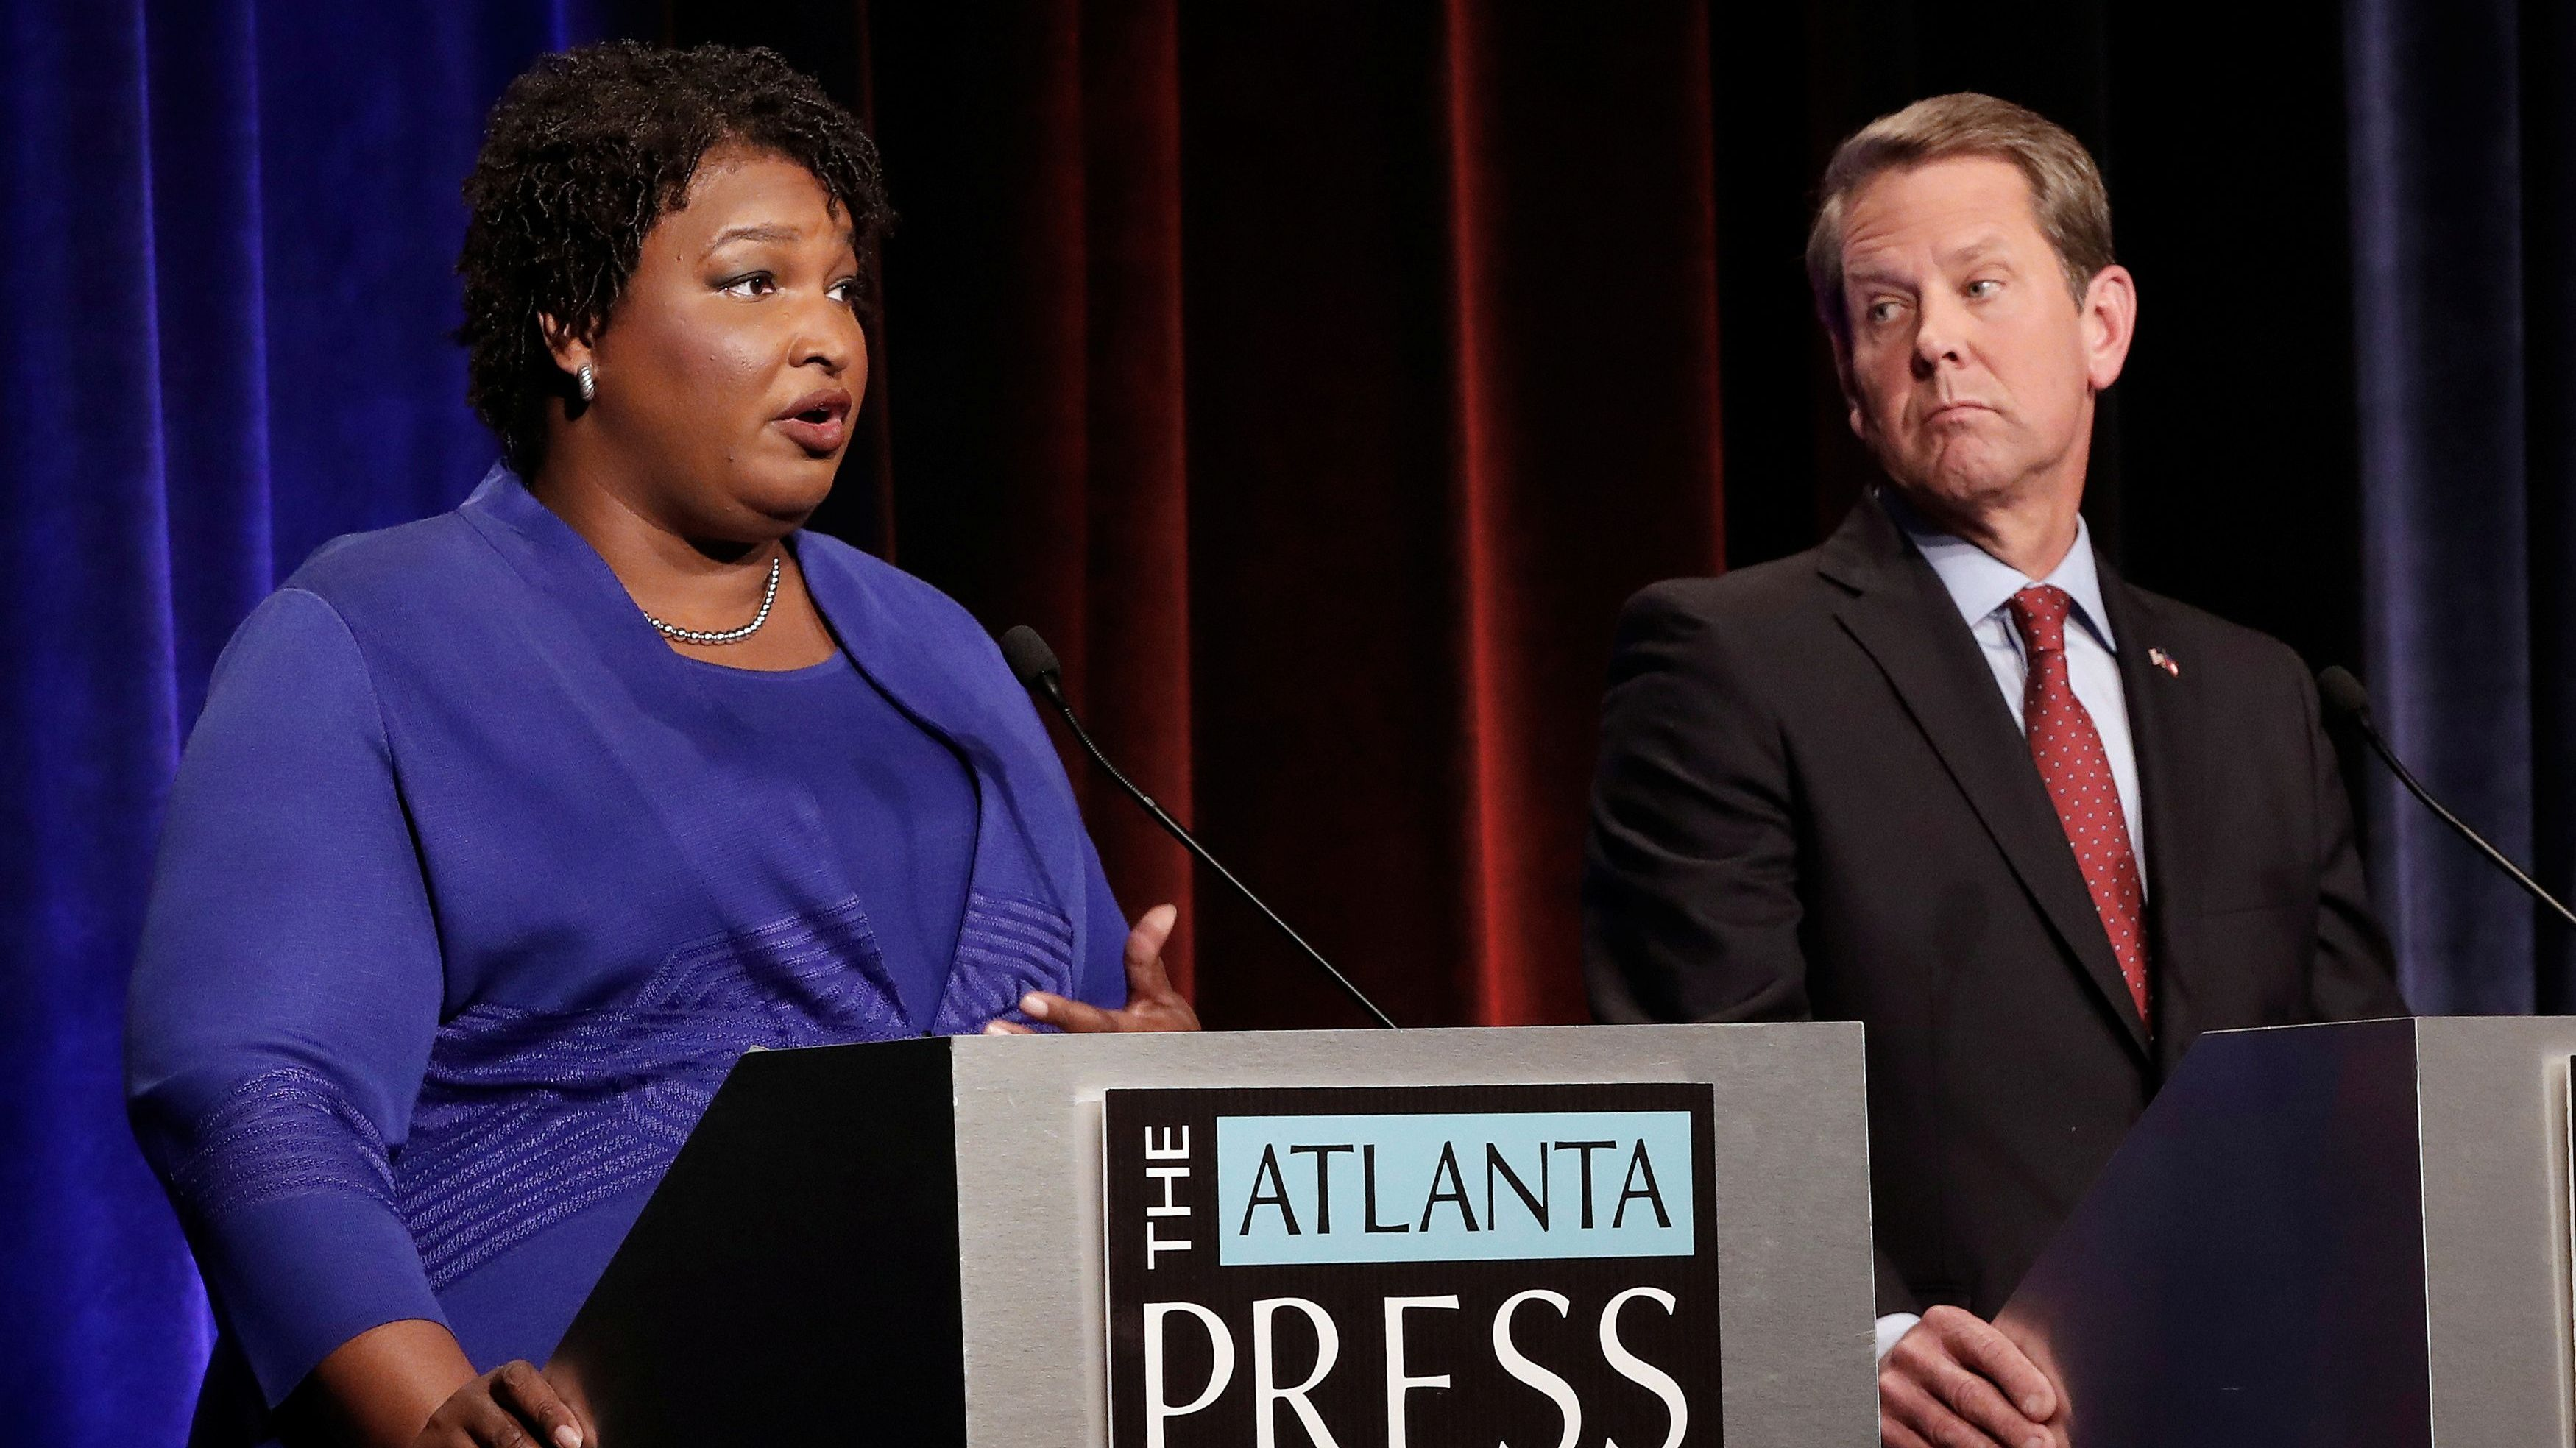 Democratic gubernatorial candidate for Georgia Stacey Abrams speaks as Republican candidate Brian Kemp looks on during a debate in Atlanta, Georgia, U.S, October 23, 2018. Picture taken on October 23, 2018. John Bazemore/Pool via REUTERS - RC1B10A44150